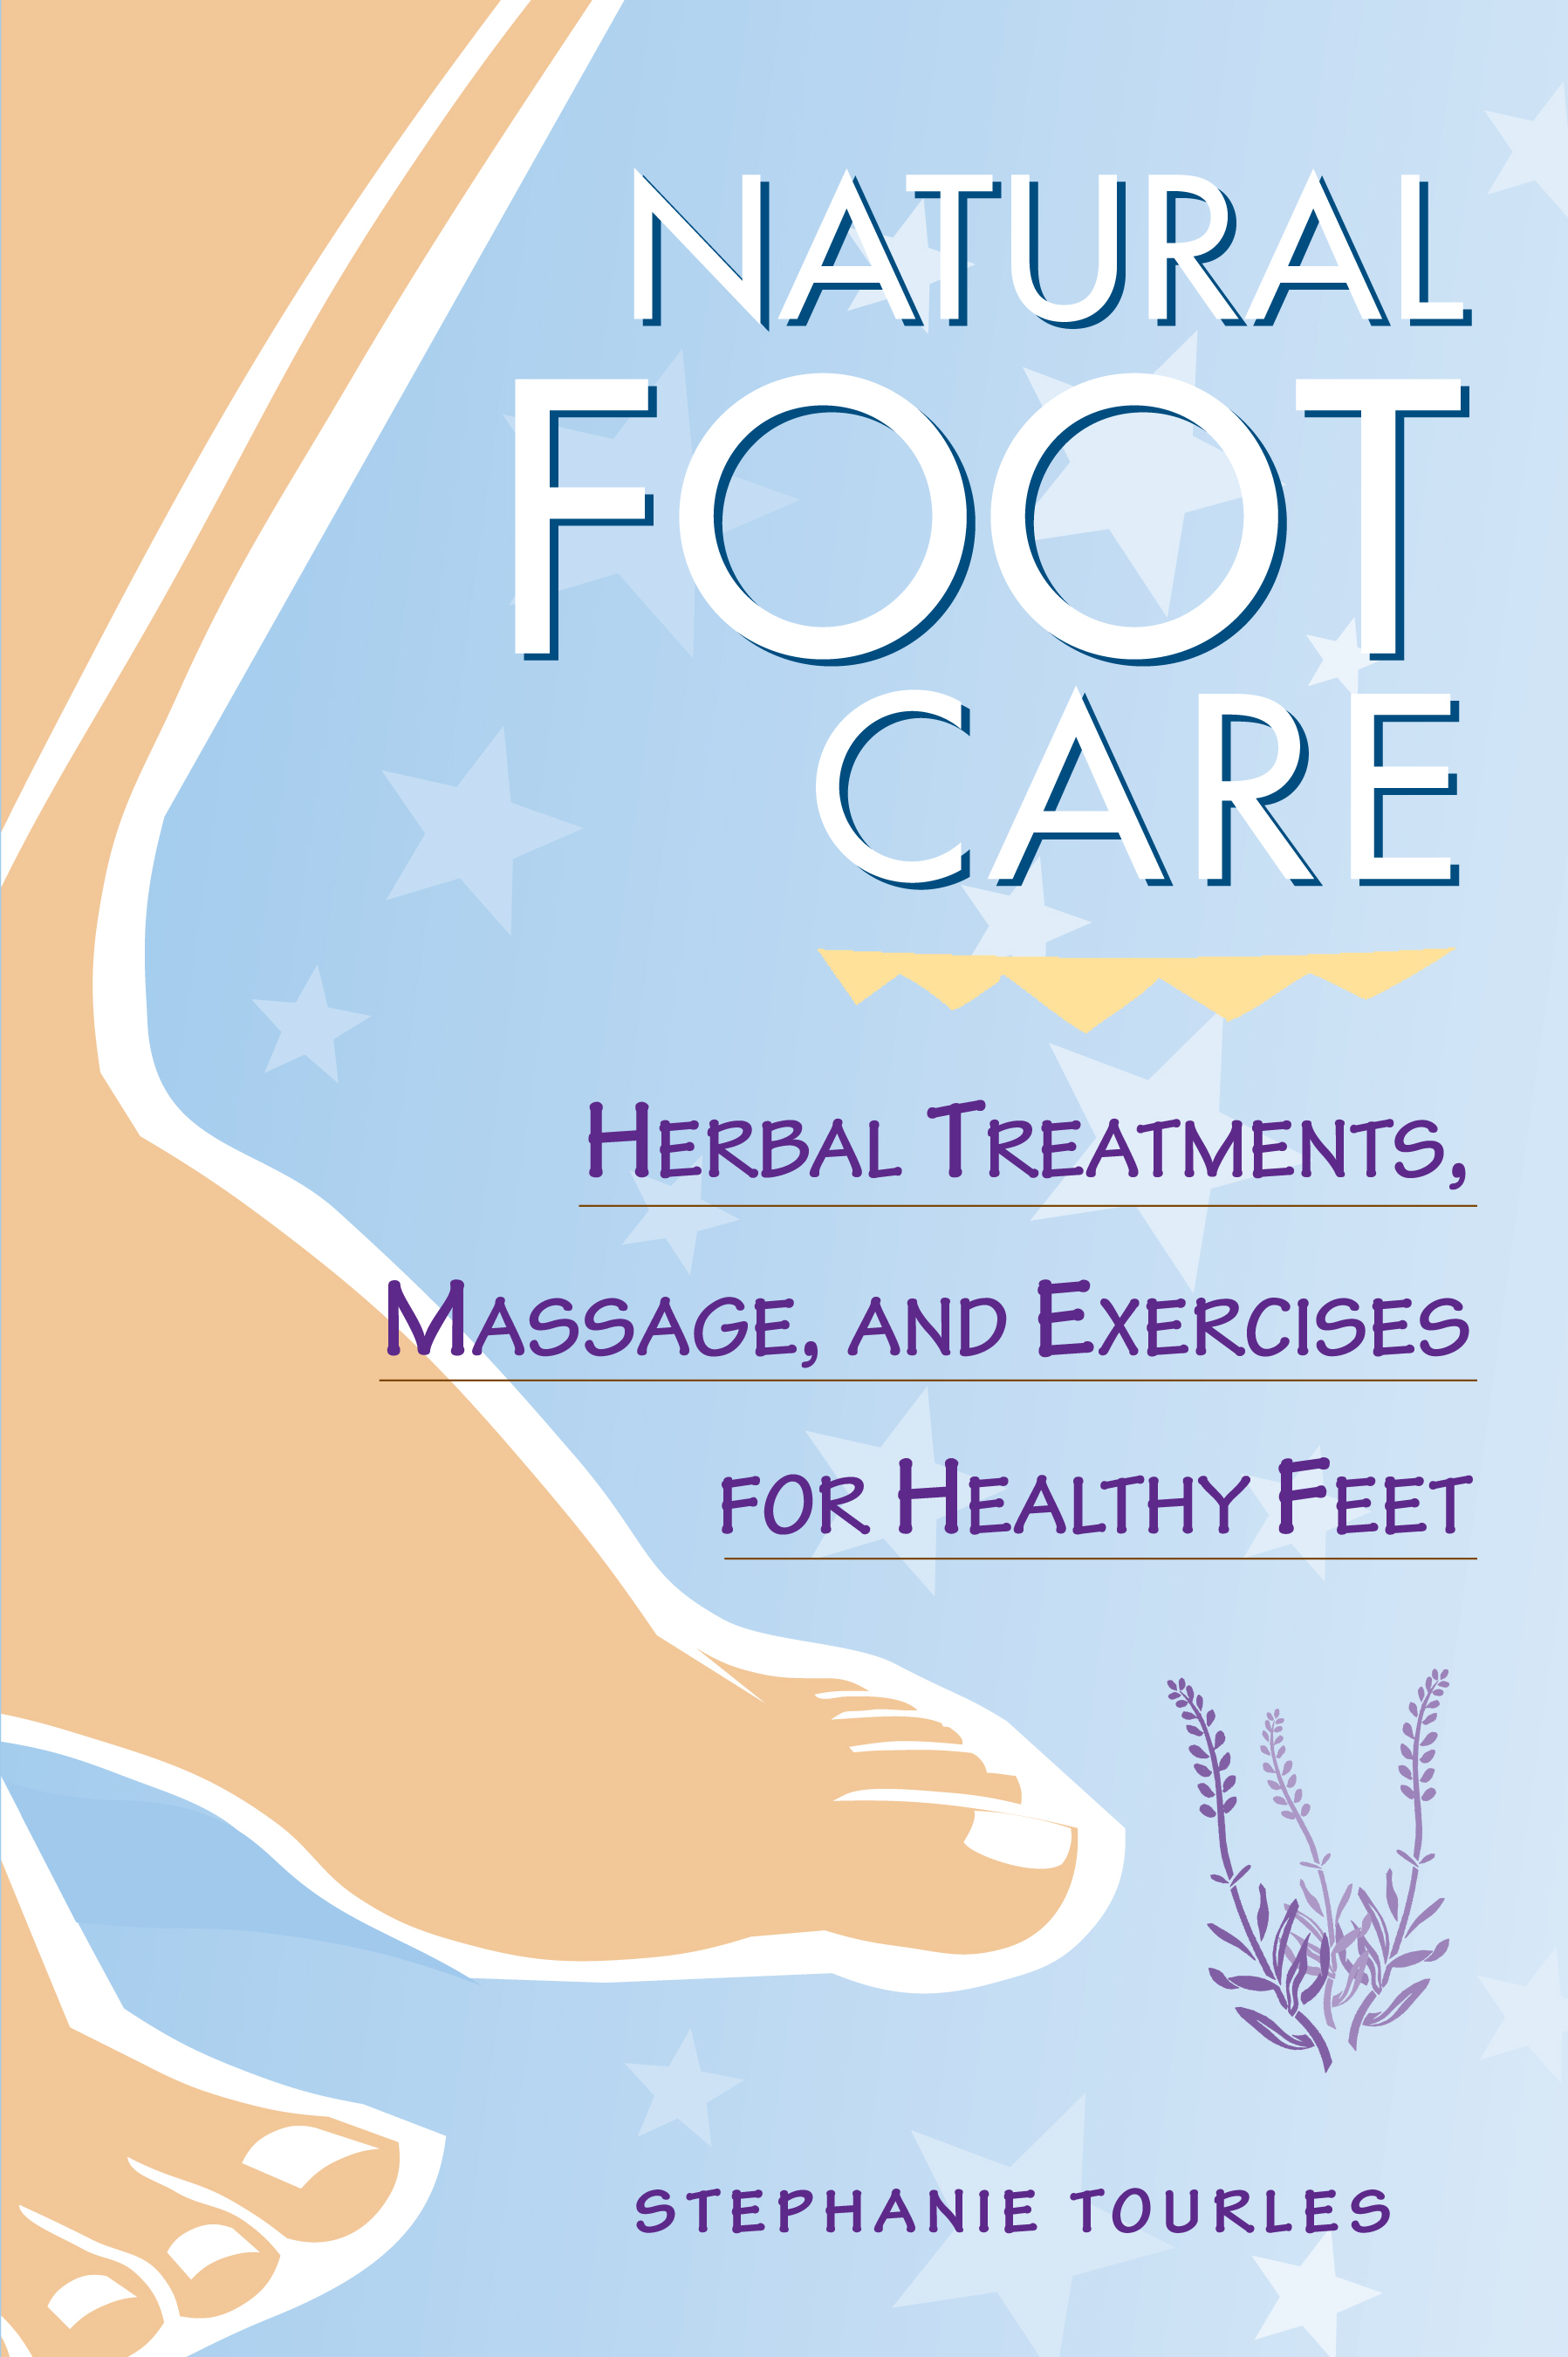 Natural Foot Care Herbal Treatments, Massage, and Exercises for Healthy Feet - Stephanie L. Tourles